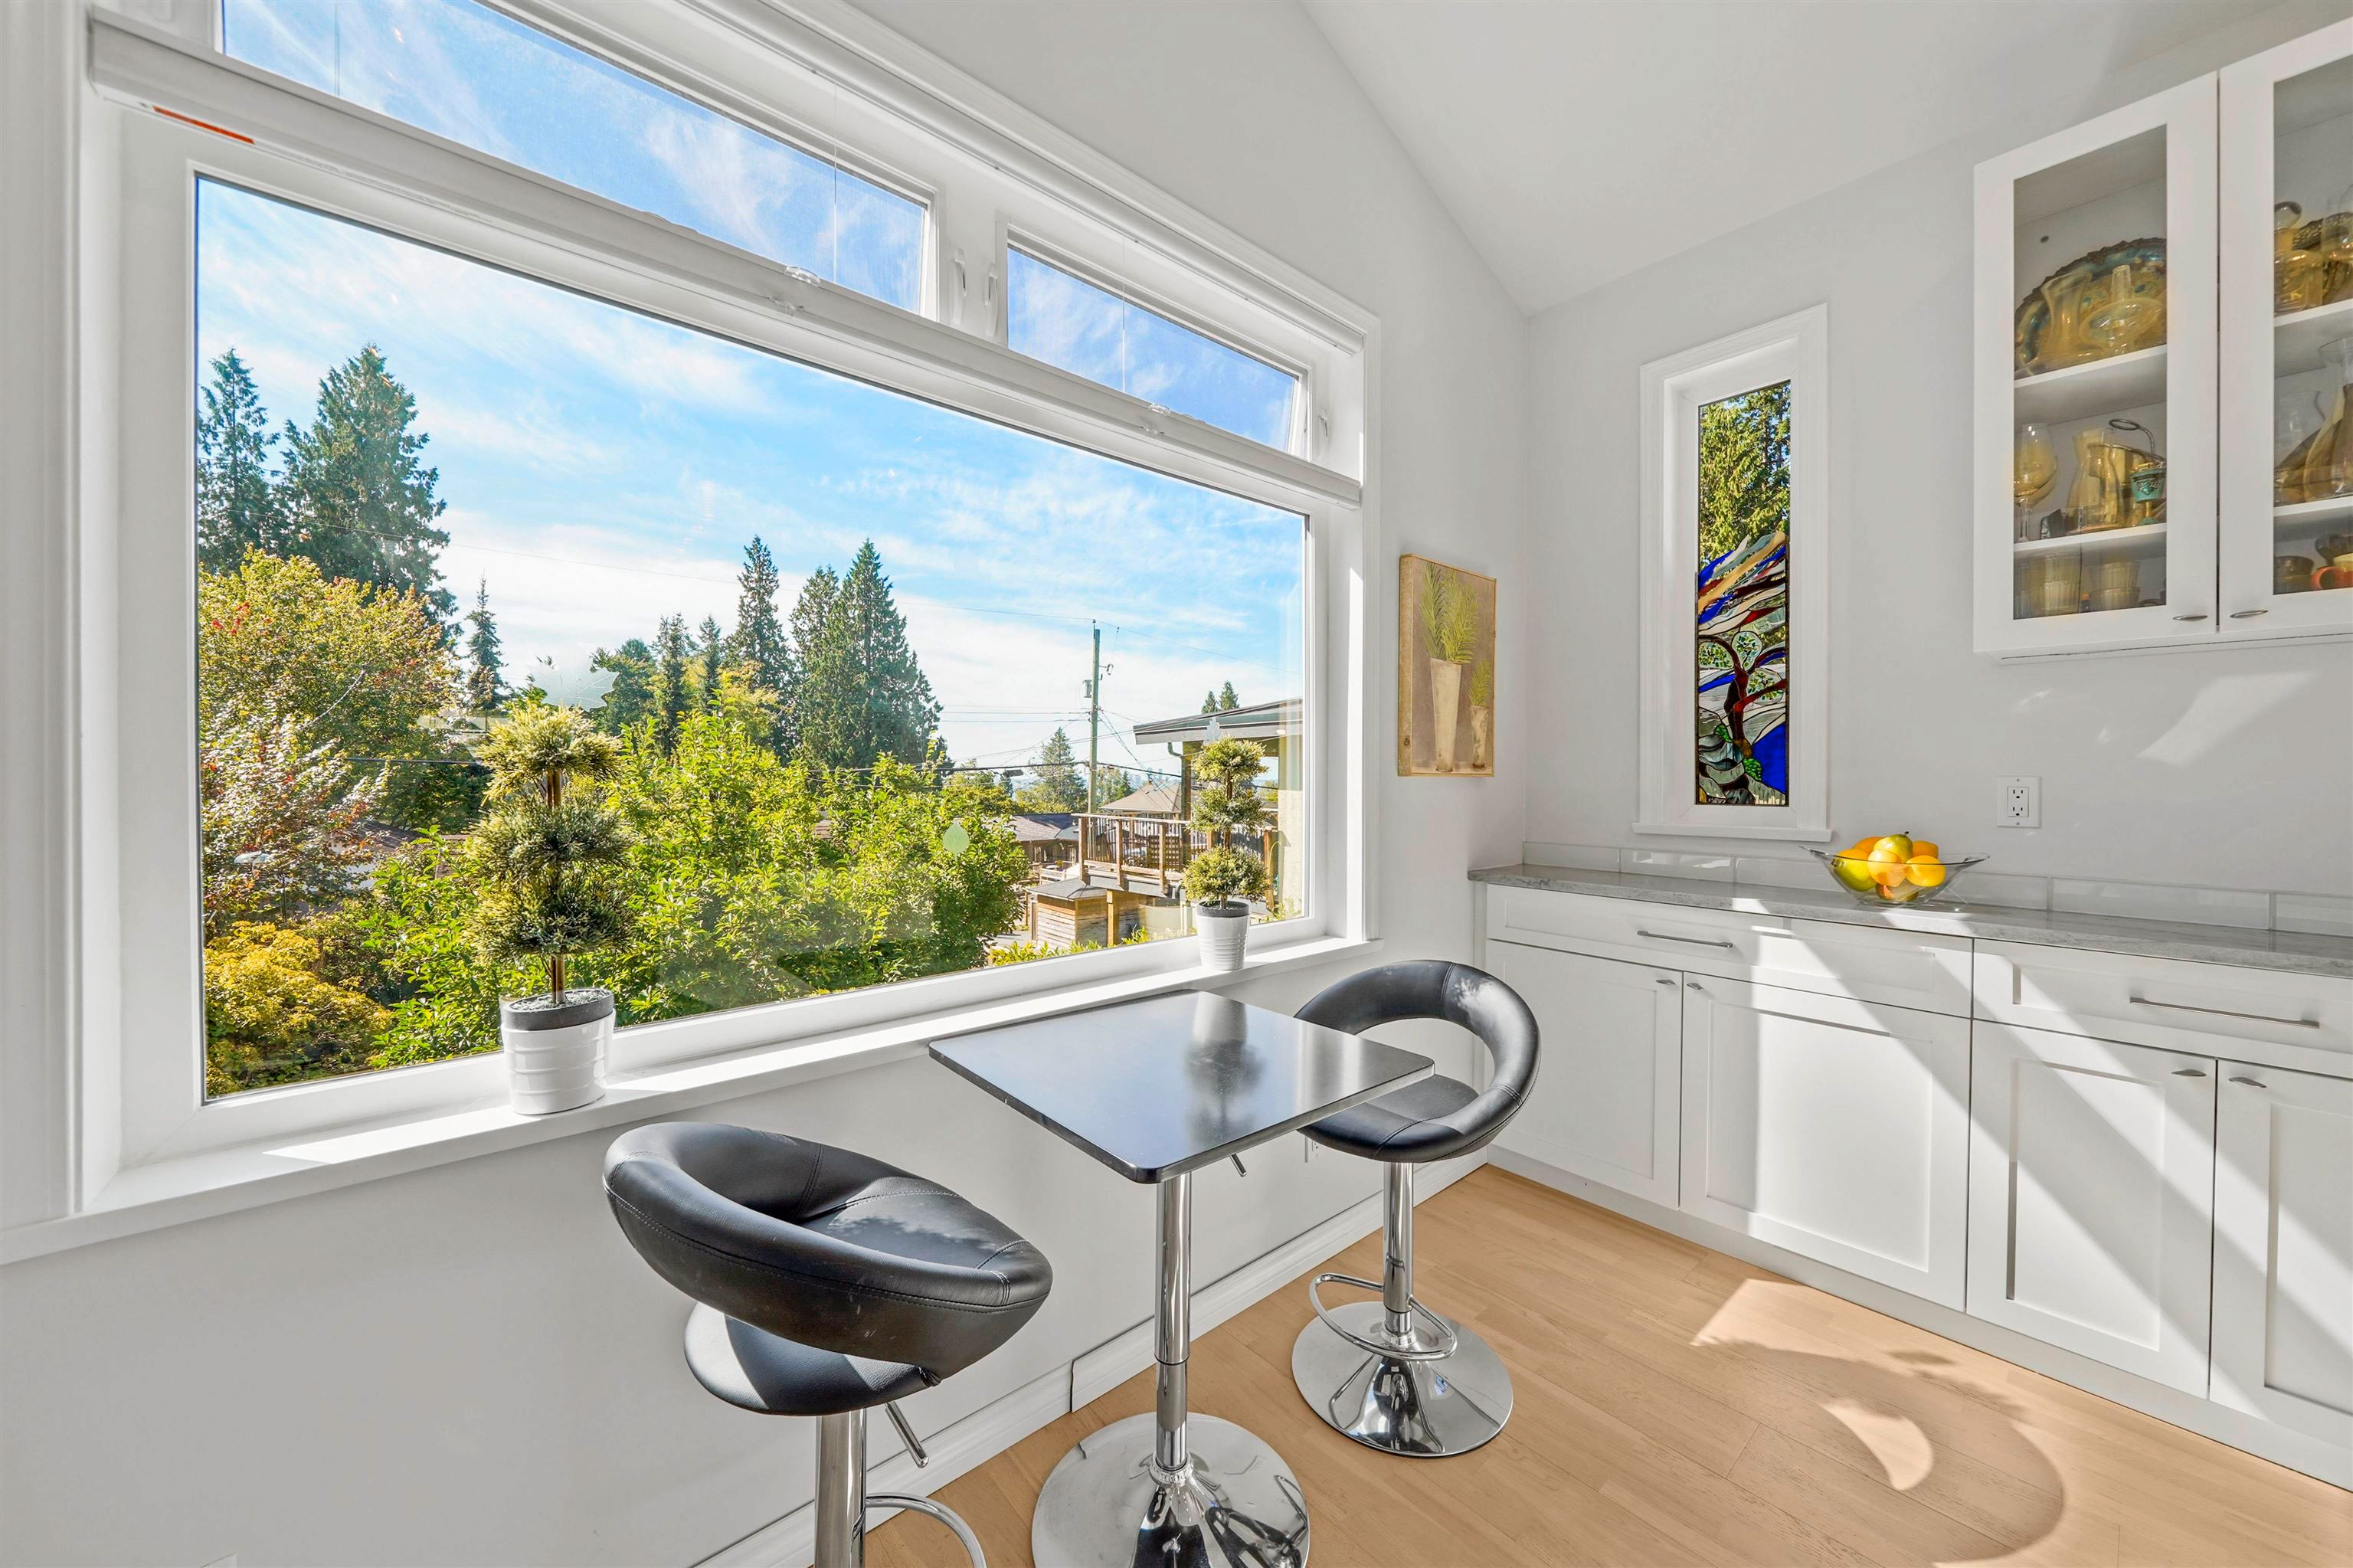 Main Photo: 259 E 27TH Street in North Vancouver: Upper Lonsdale House for sale : MLS®# R2619117